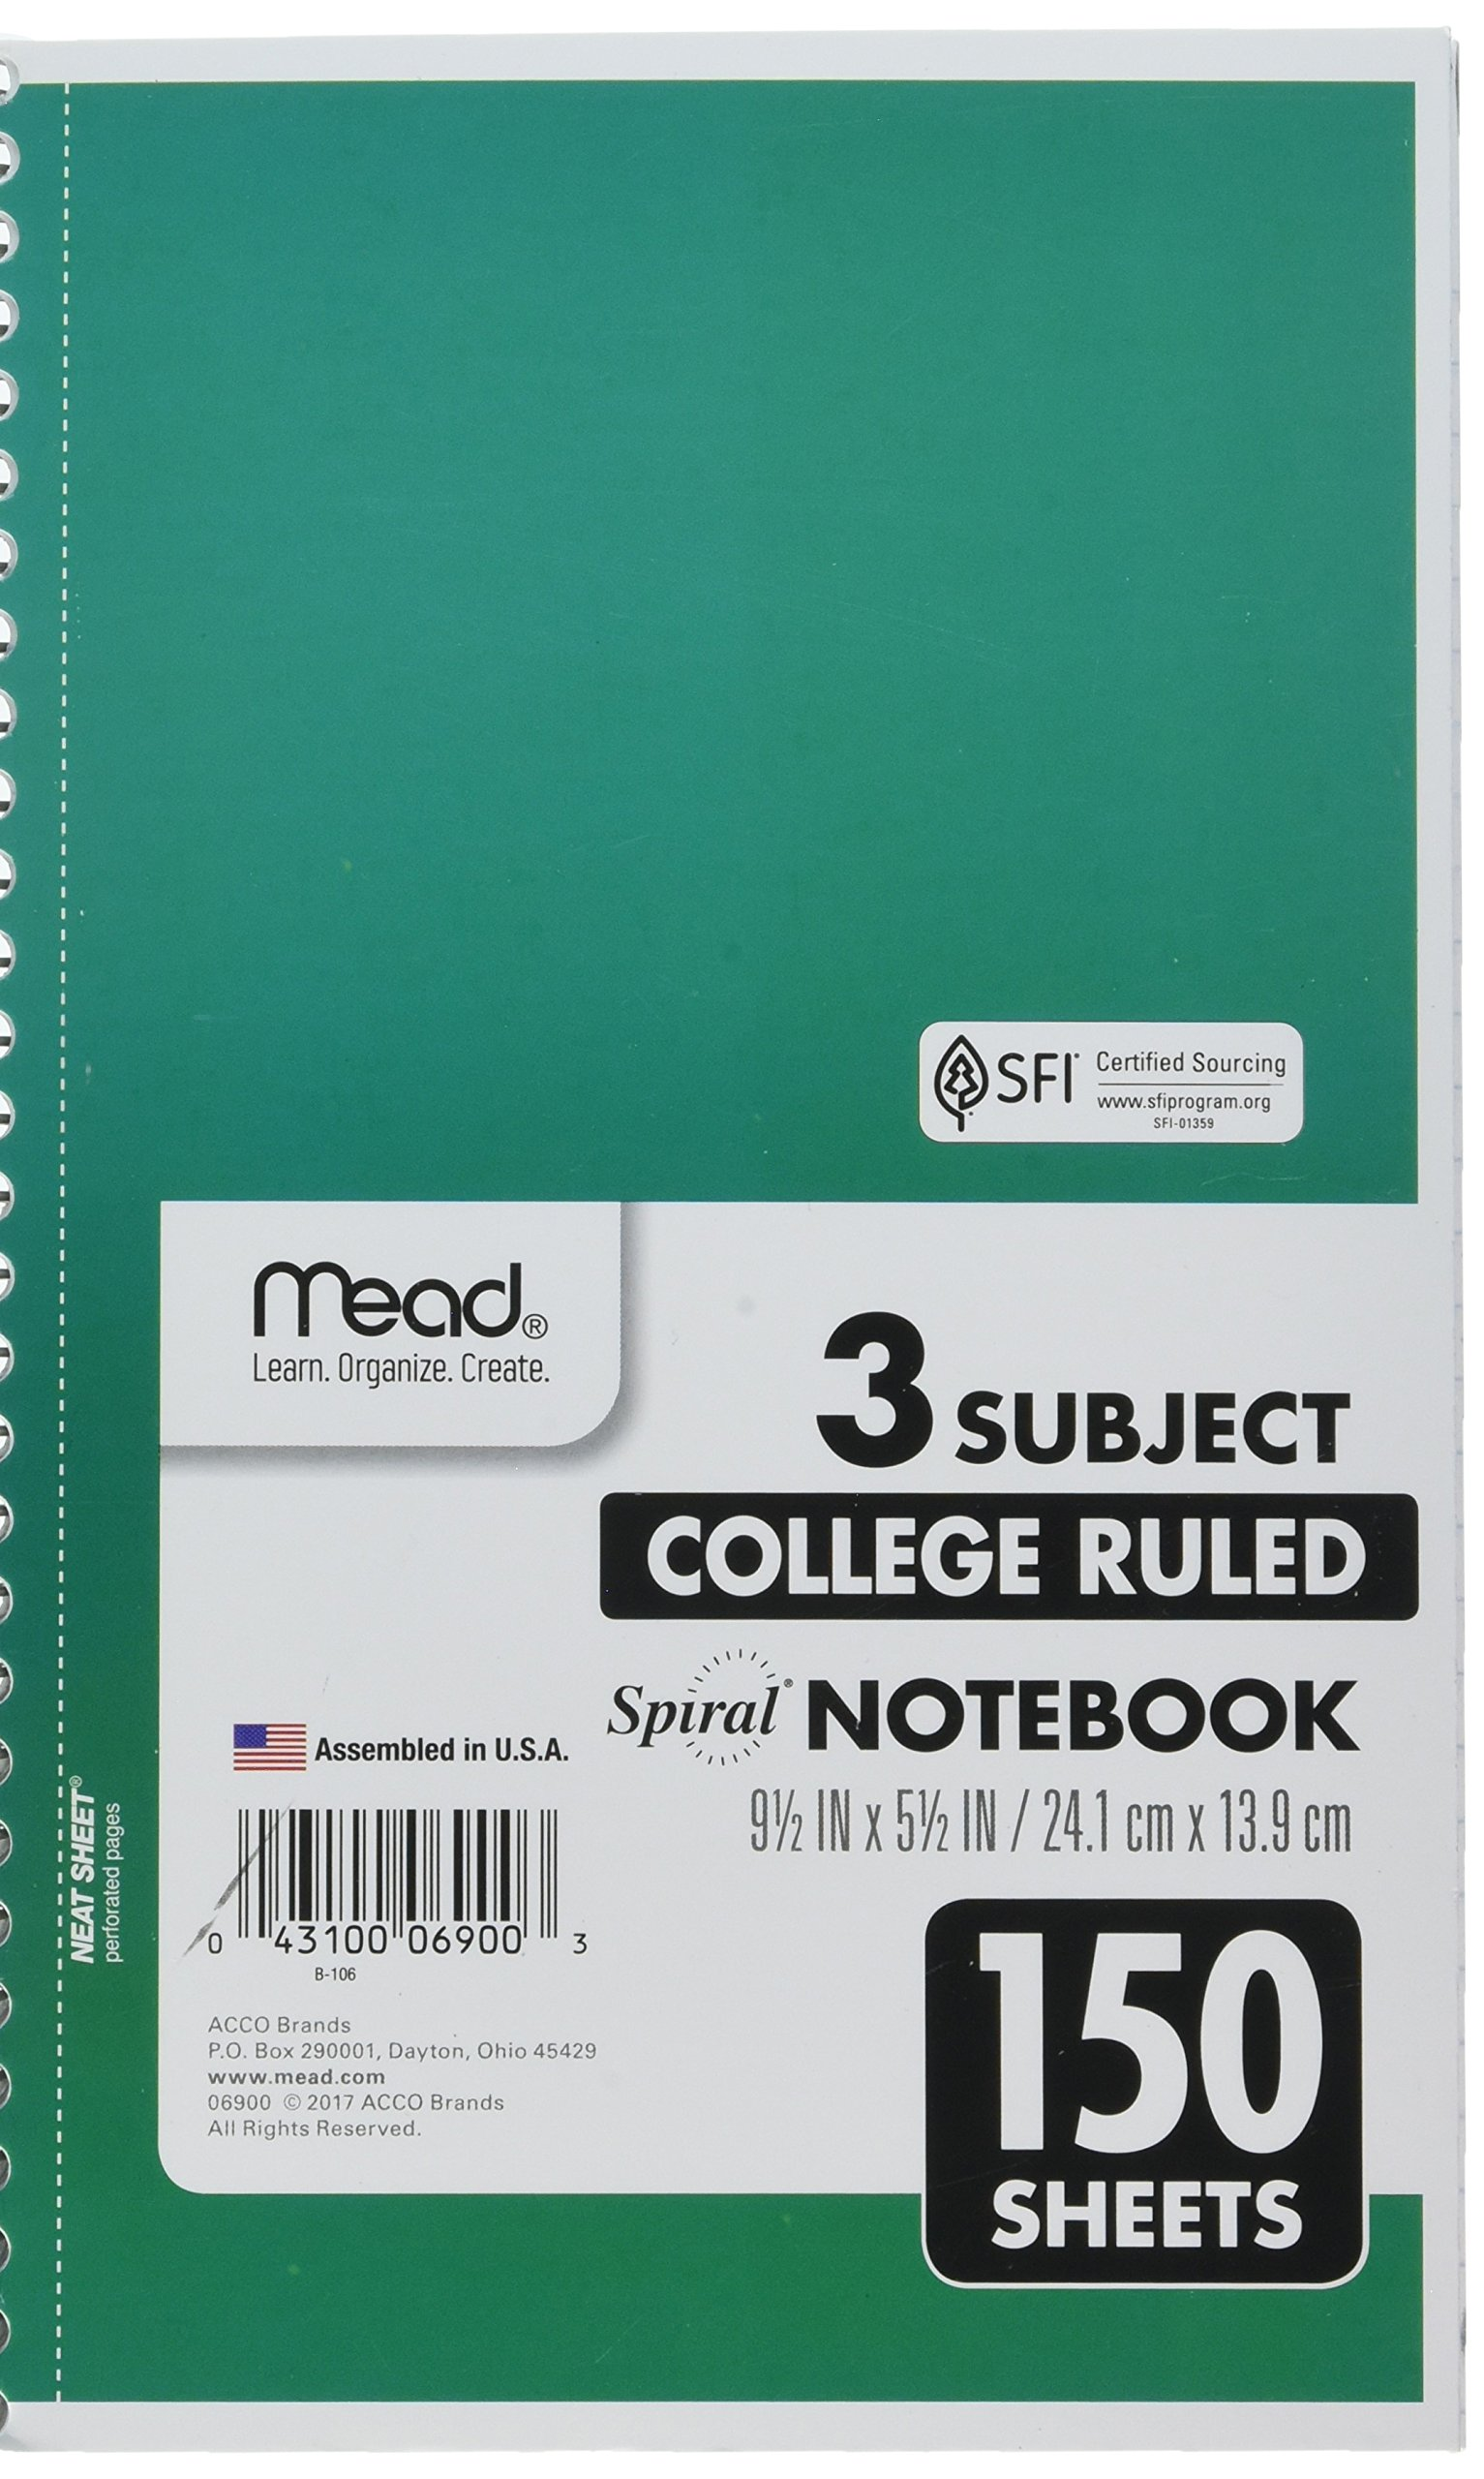 Mead Spiral Notebook, 3 Subject, College Ruled Paper, 150 Sheets, 9-1/2'' x 5-1/2'', Color Selected For You (06900)